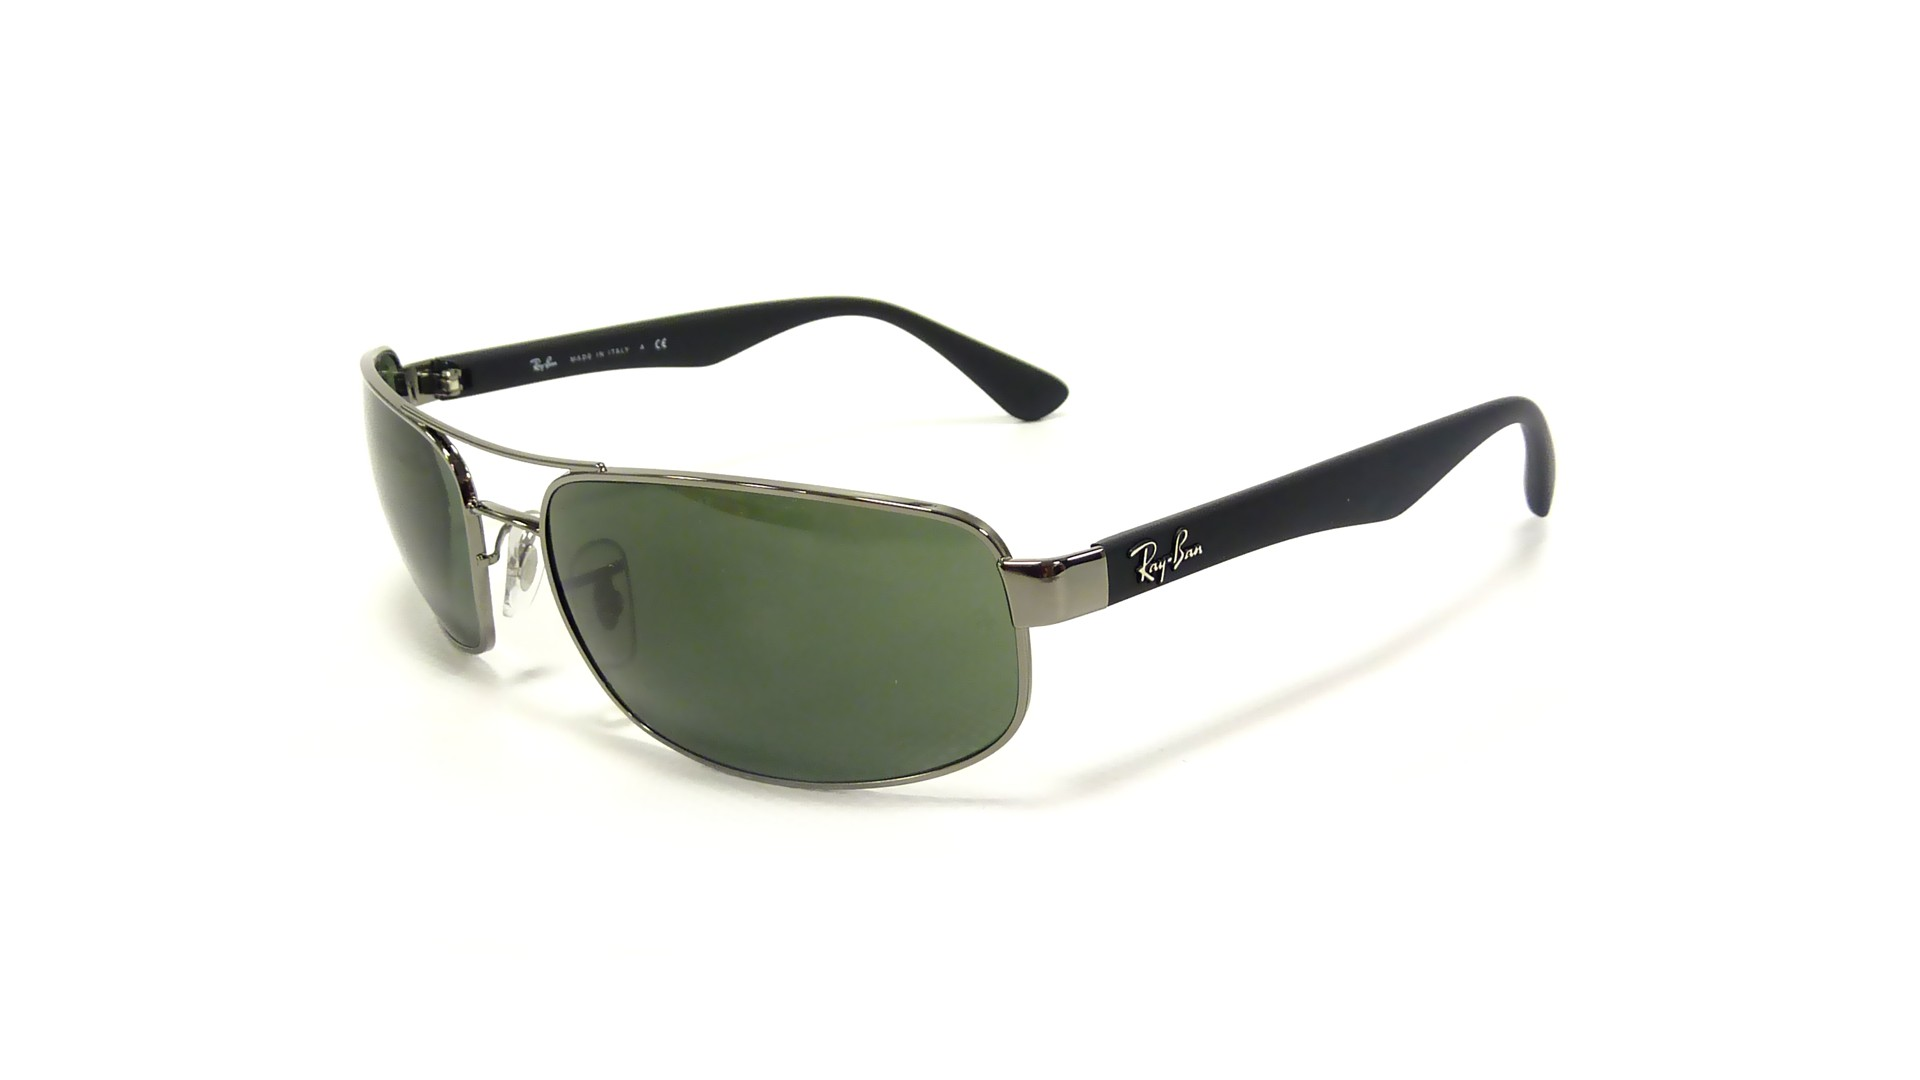 81aece373b Sunglasses Ray-Ban RB3445 004 64-17 Grey Large